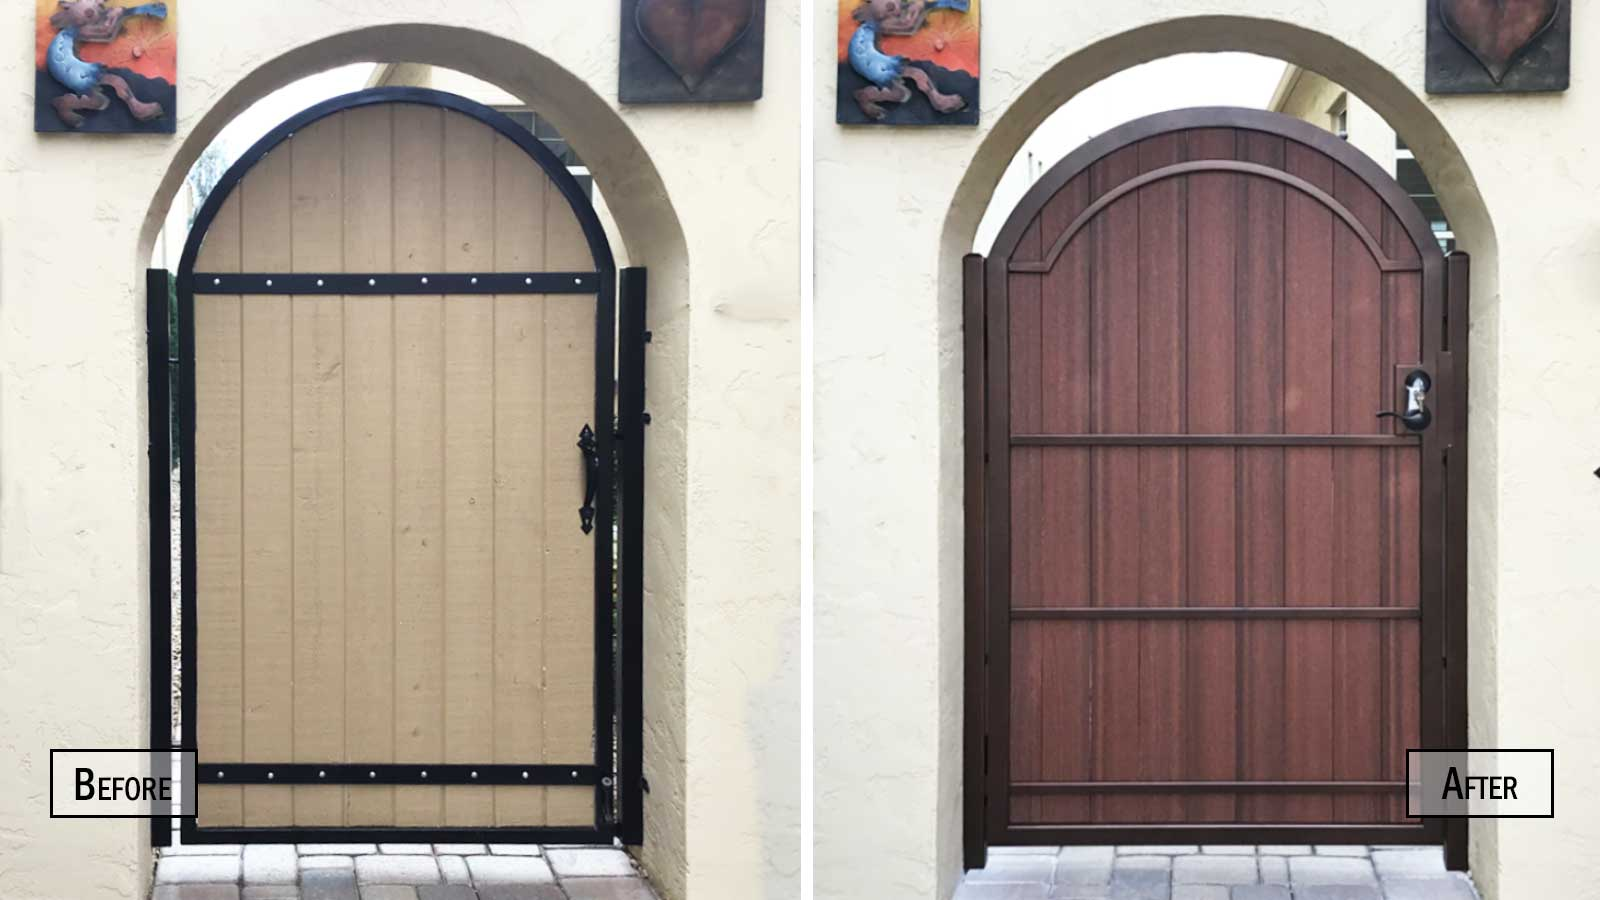 Before and After Arched Composite Wood and Iron Gate